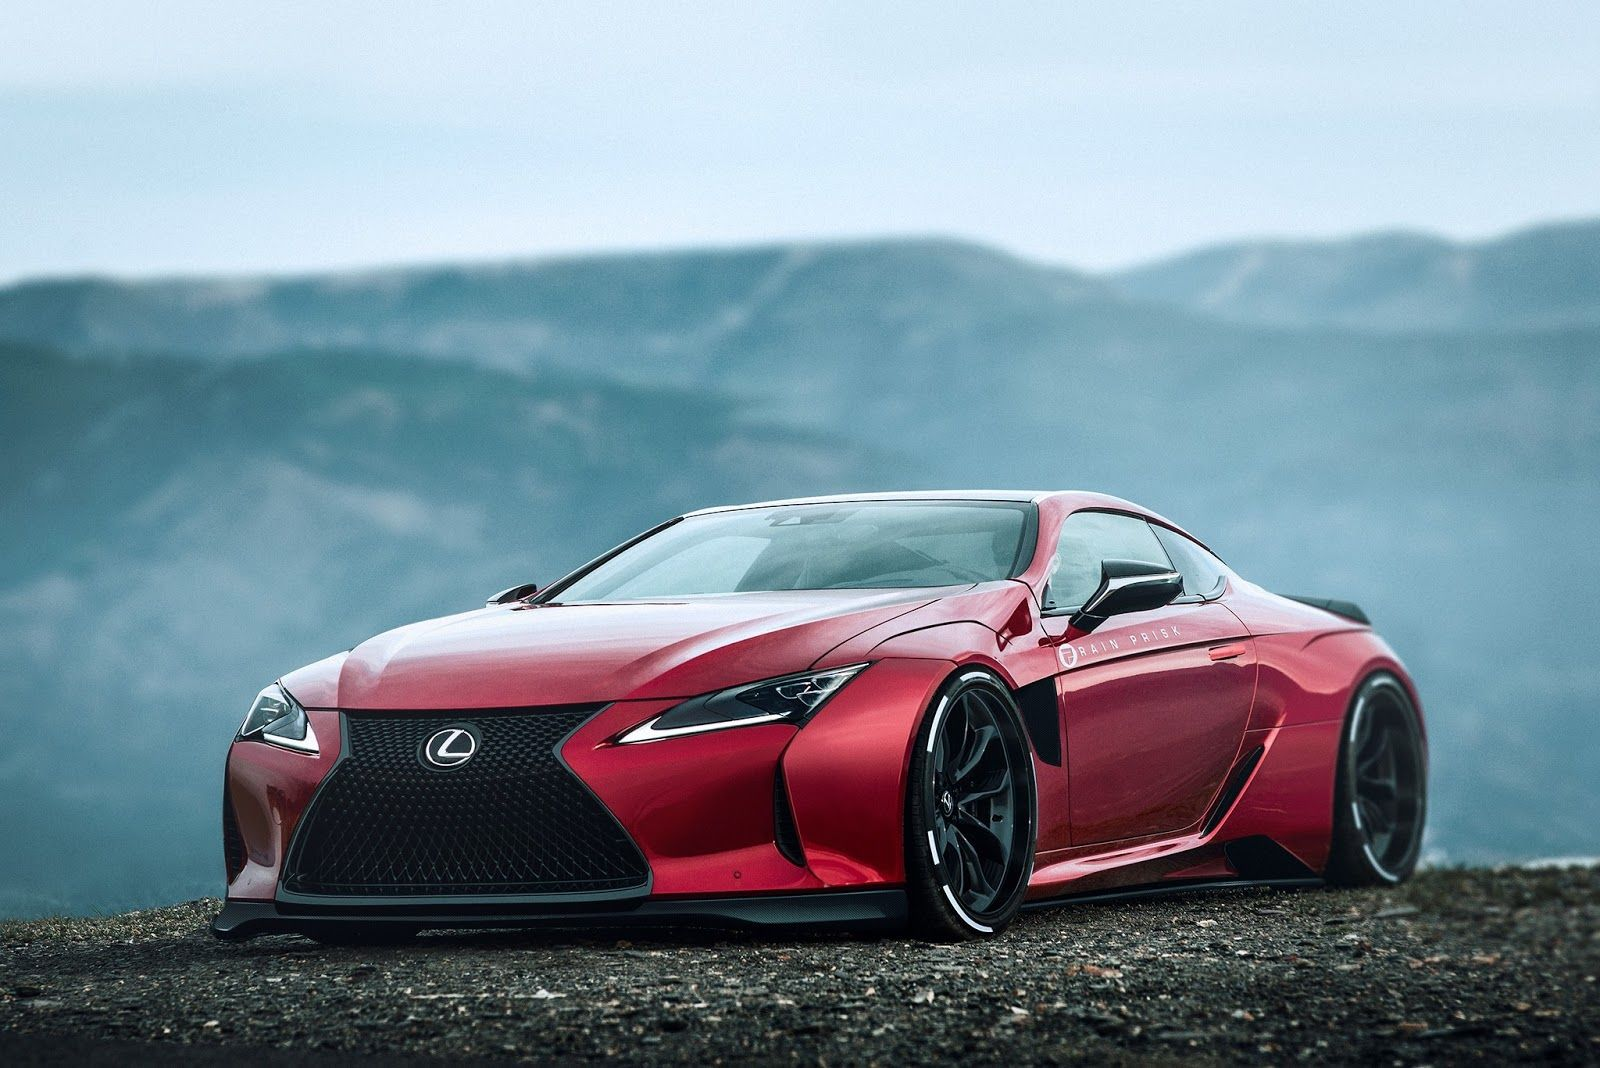 Lexus Lc500 Gets A Supercar Styling Overhaul Lexus Lc Super